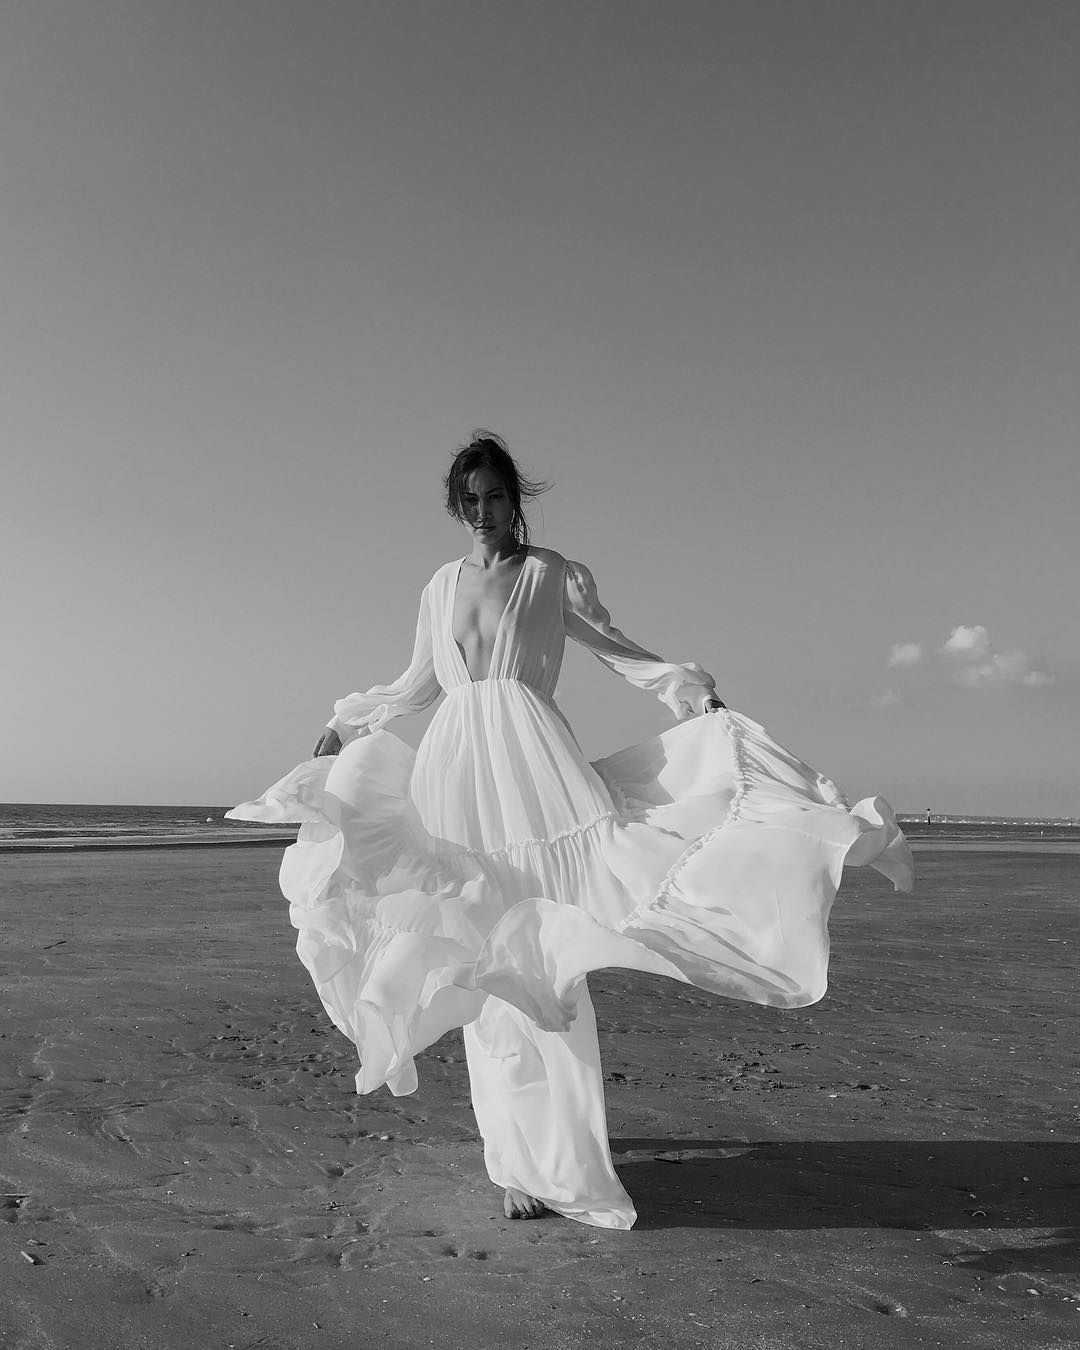 The shape of wind 💨 •  fashion  editorial  style  outfit  white  silk   maxi  dress  ocean  horizon  wind  barrieremoments  love • 📸  my7lv e59074104ad